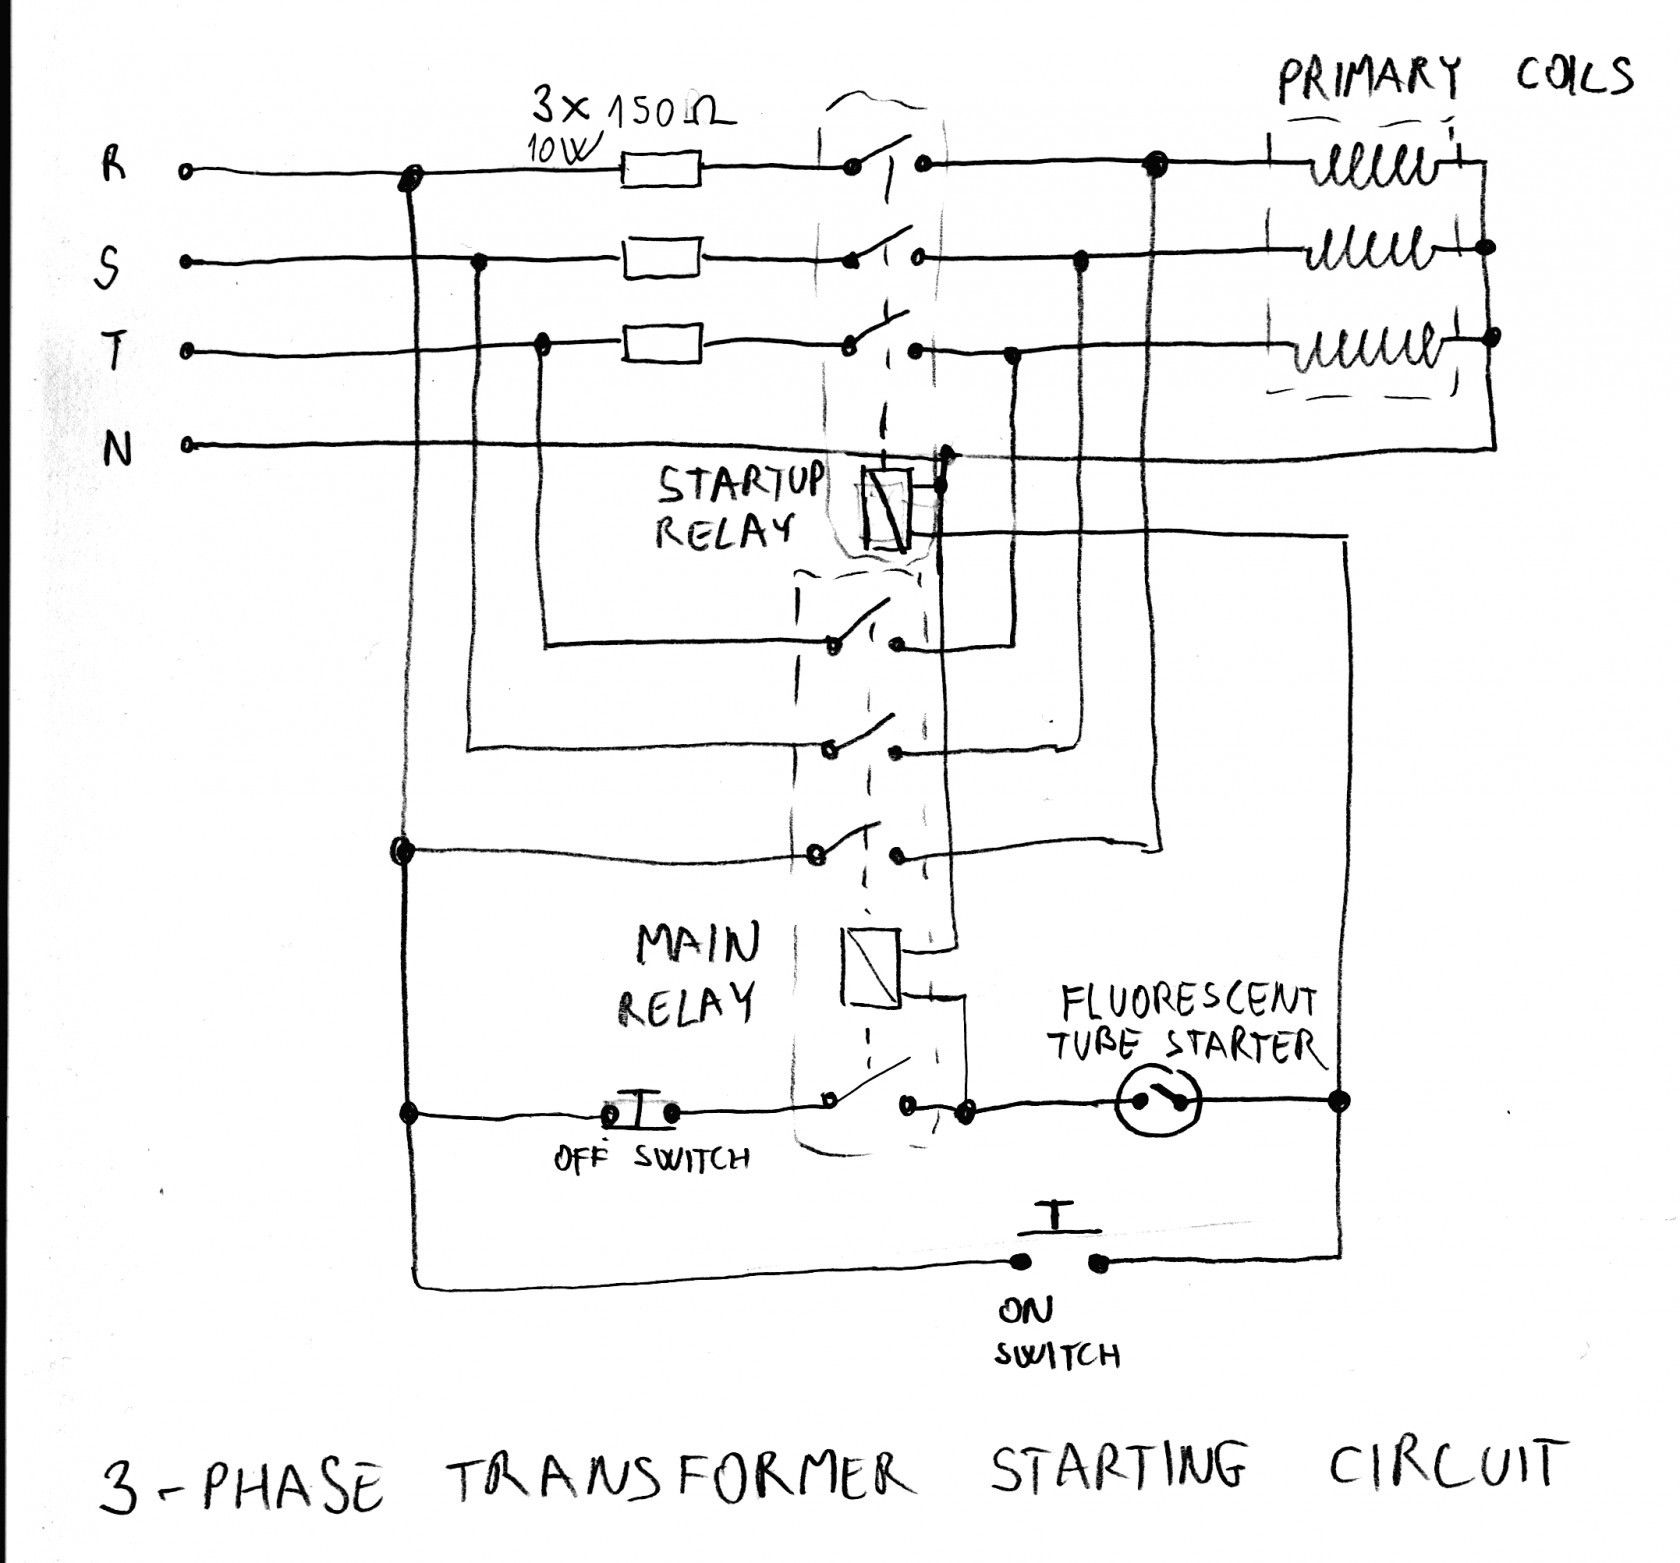 16 Automatic Common Wiring Diagrams Design (With images